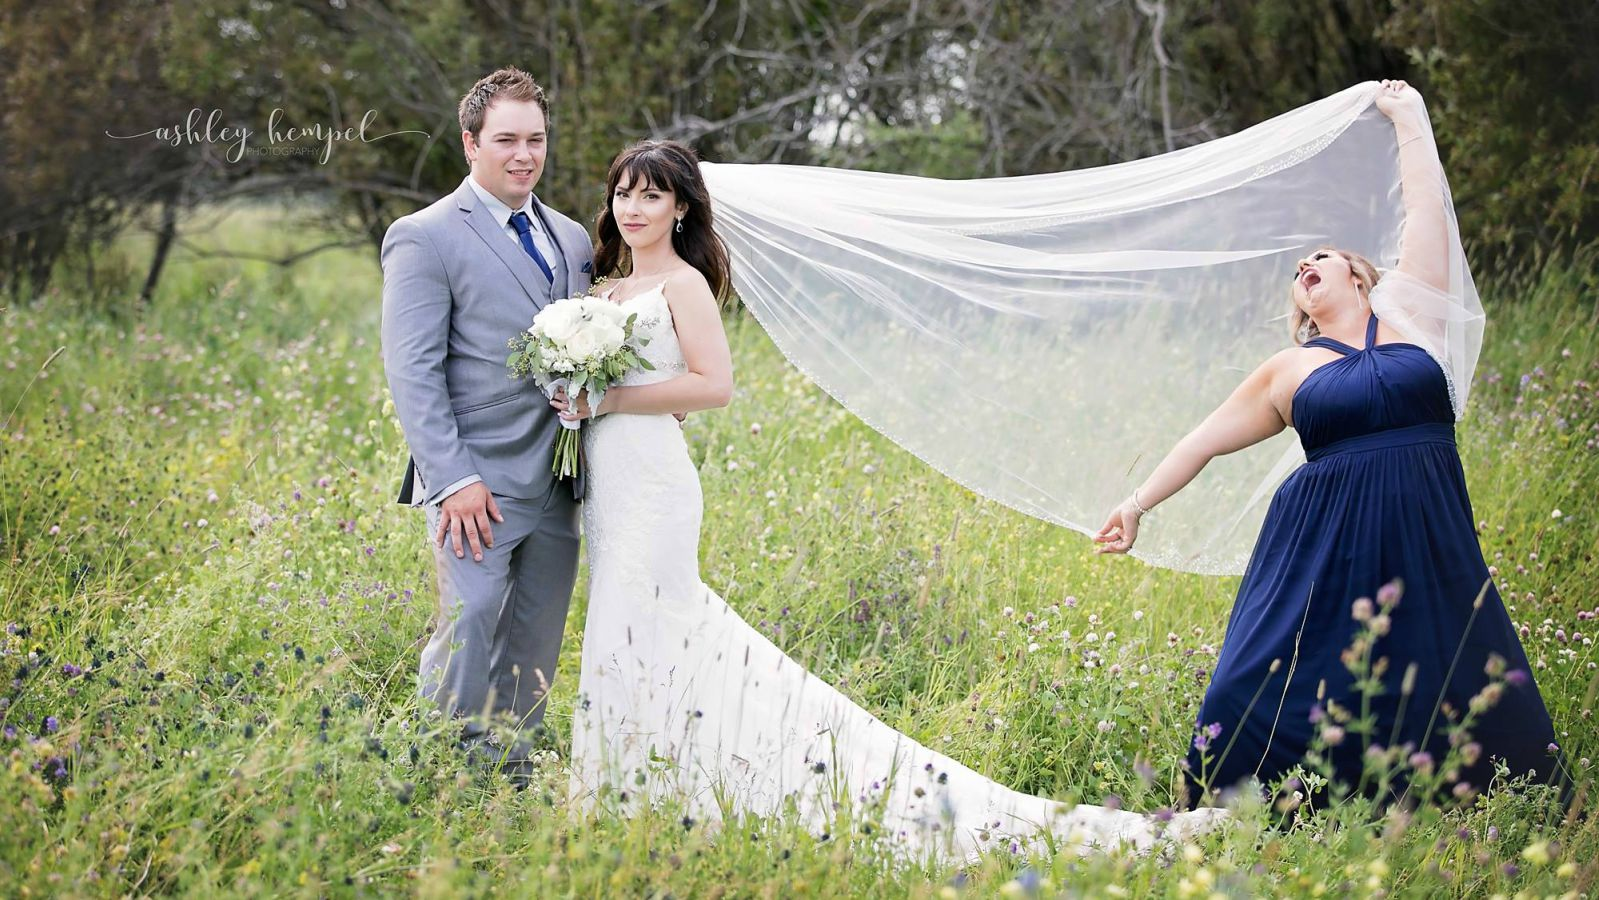 Maid of Honor Photobombs Wedding Photos in the Most Hilarious Way.